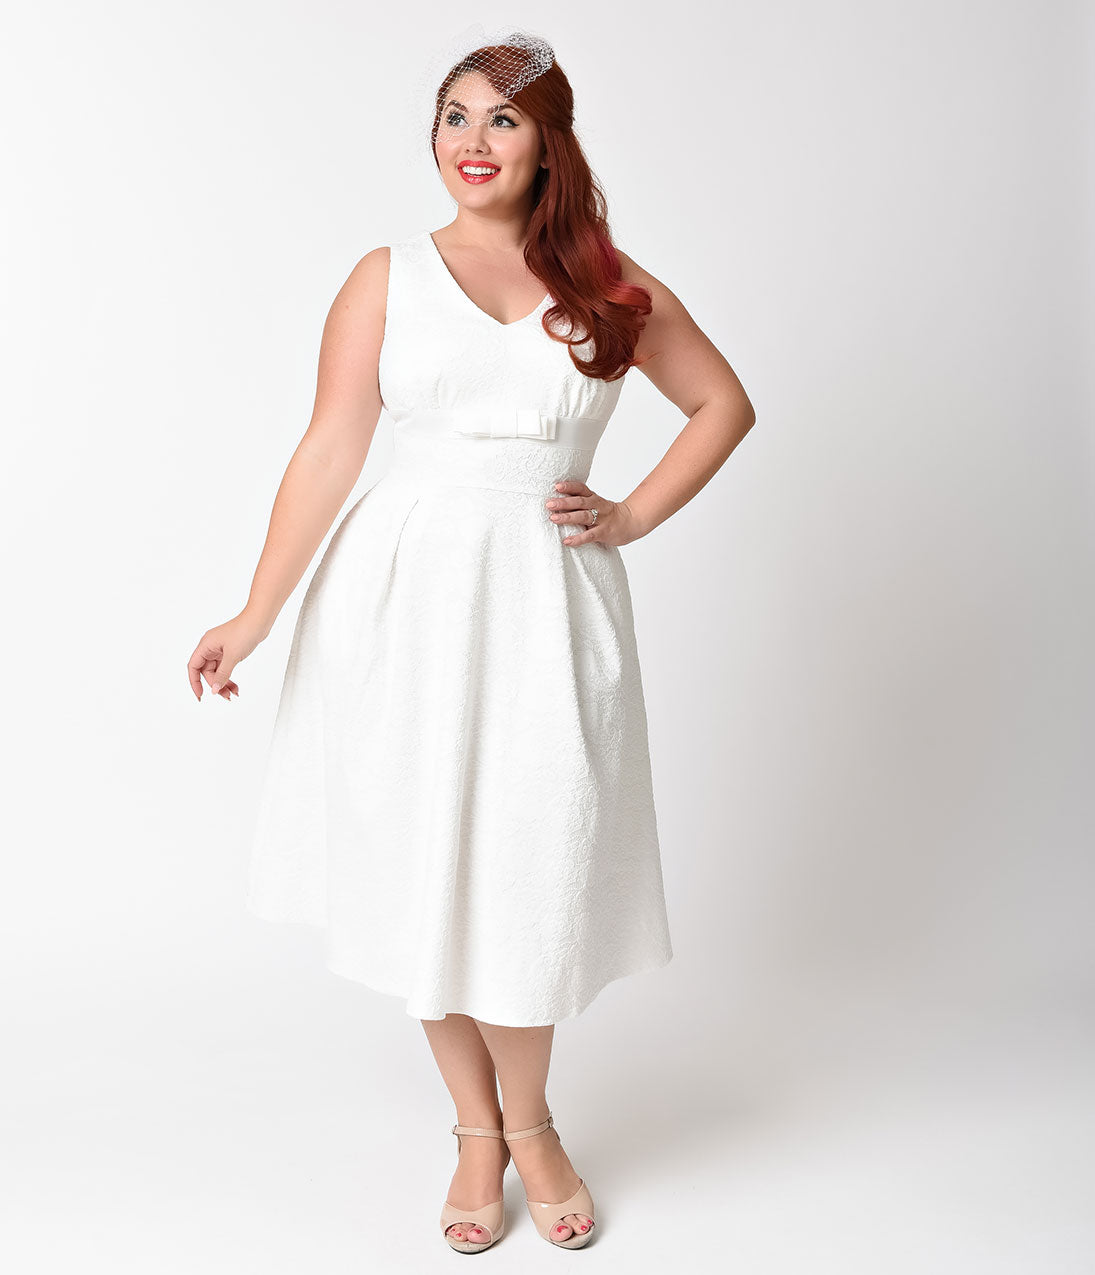 Vintage Inspired Wedding Dress | Vintage Style Wedding Dresses Voodoo Vixen Plus Size 1950s Style White Lace Monroe Swing Dress $58.00 AT vintagedancer.com